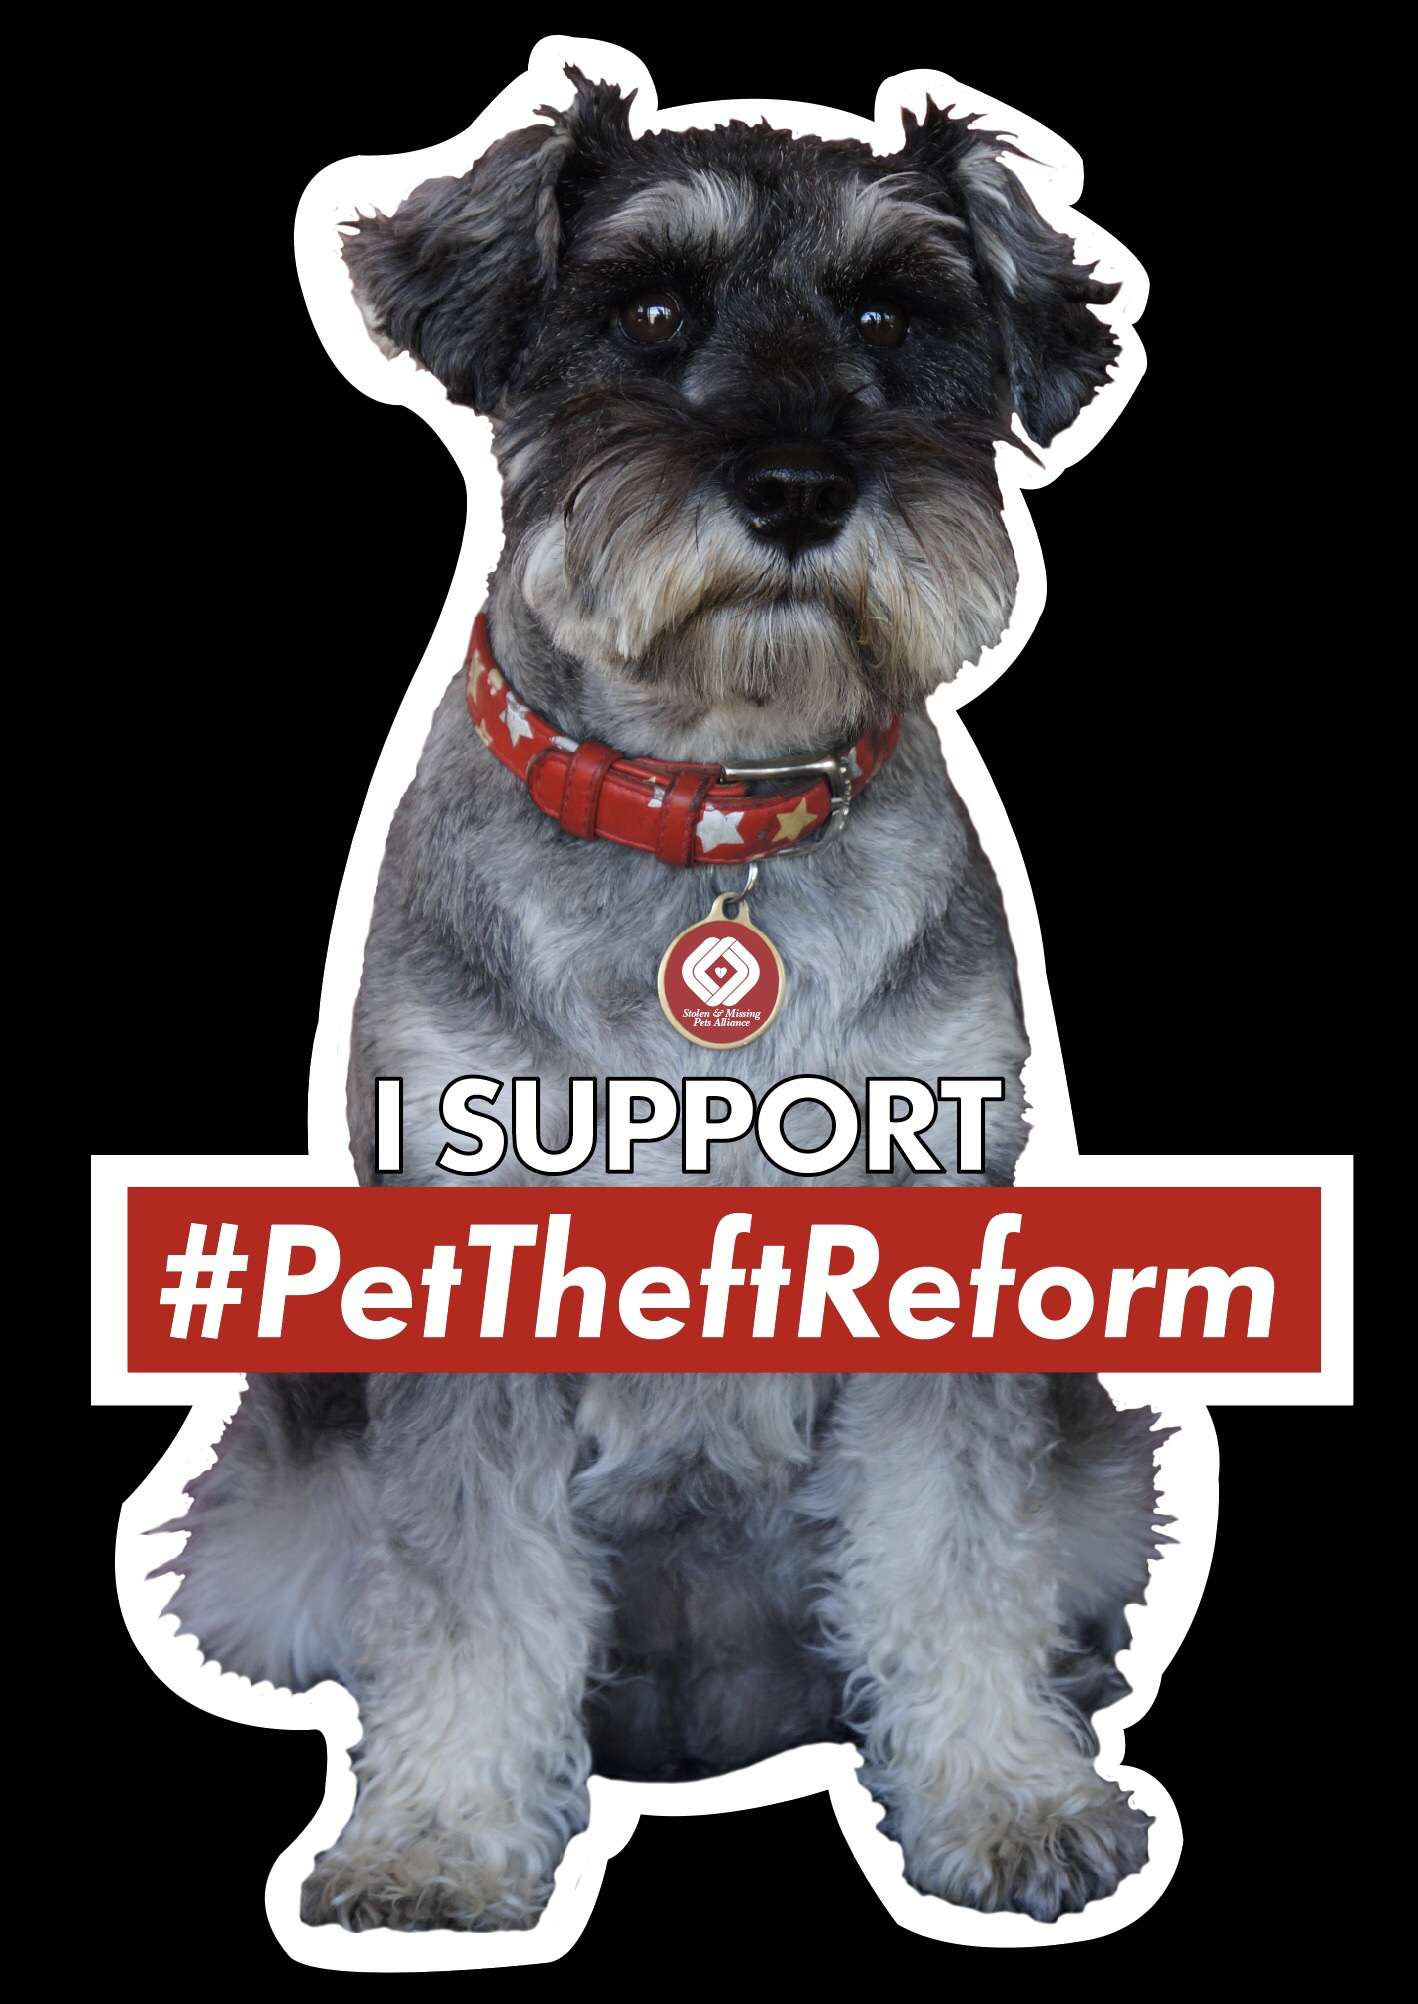 APDAWG Pet Theft meeting in Parliament today, 26 February 2019.  Another step closer to #PetTheftReform ? #APDAWG